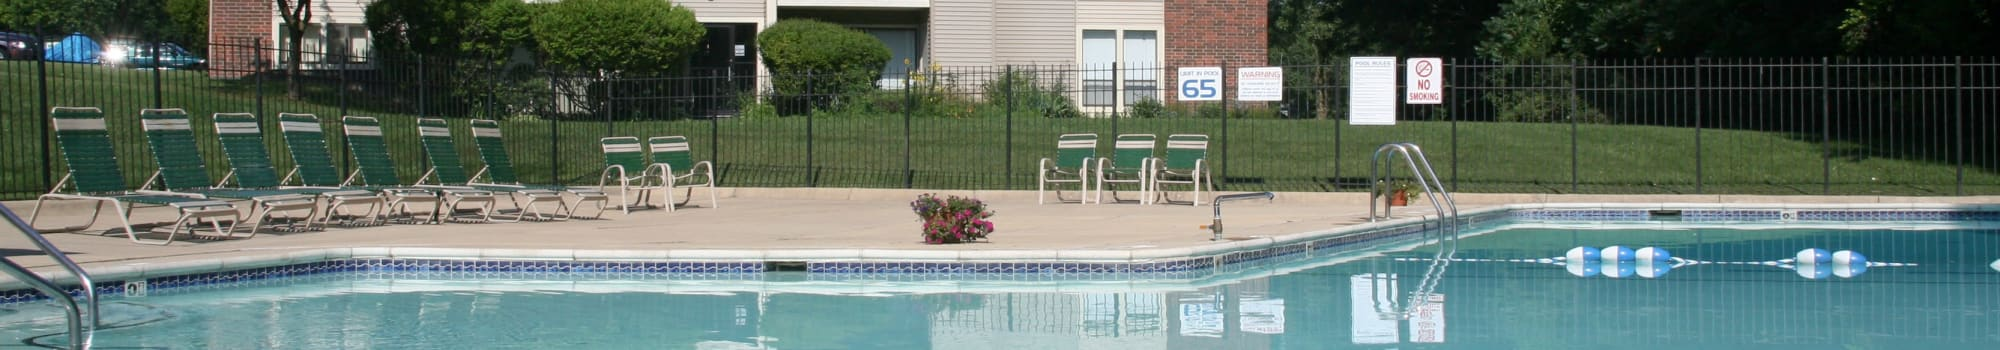 Fairway Trails in Ypsilanti offering 1 & 2 bedroom apartments